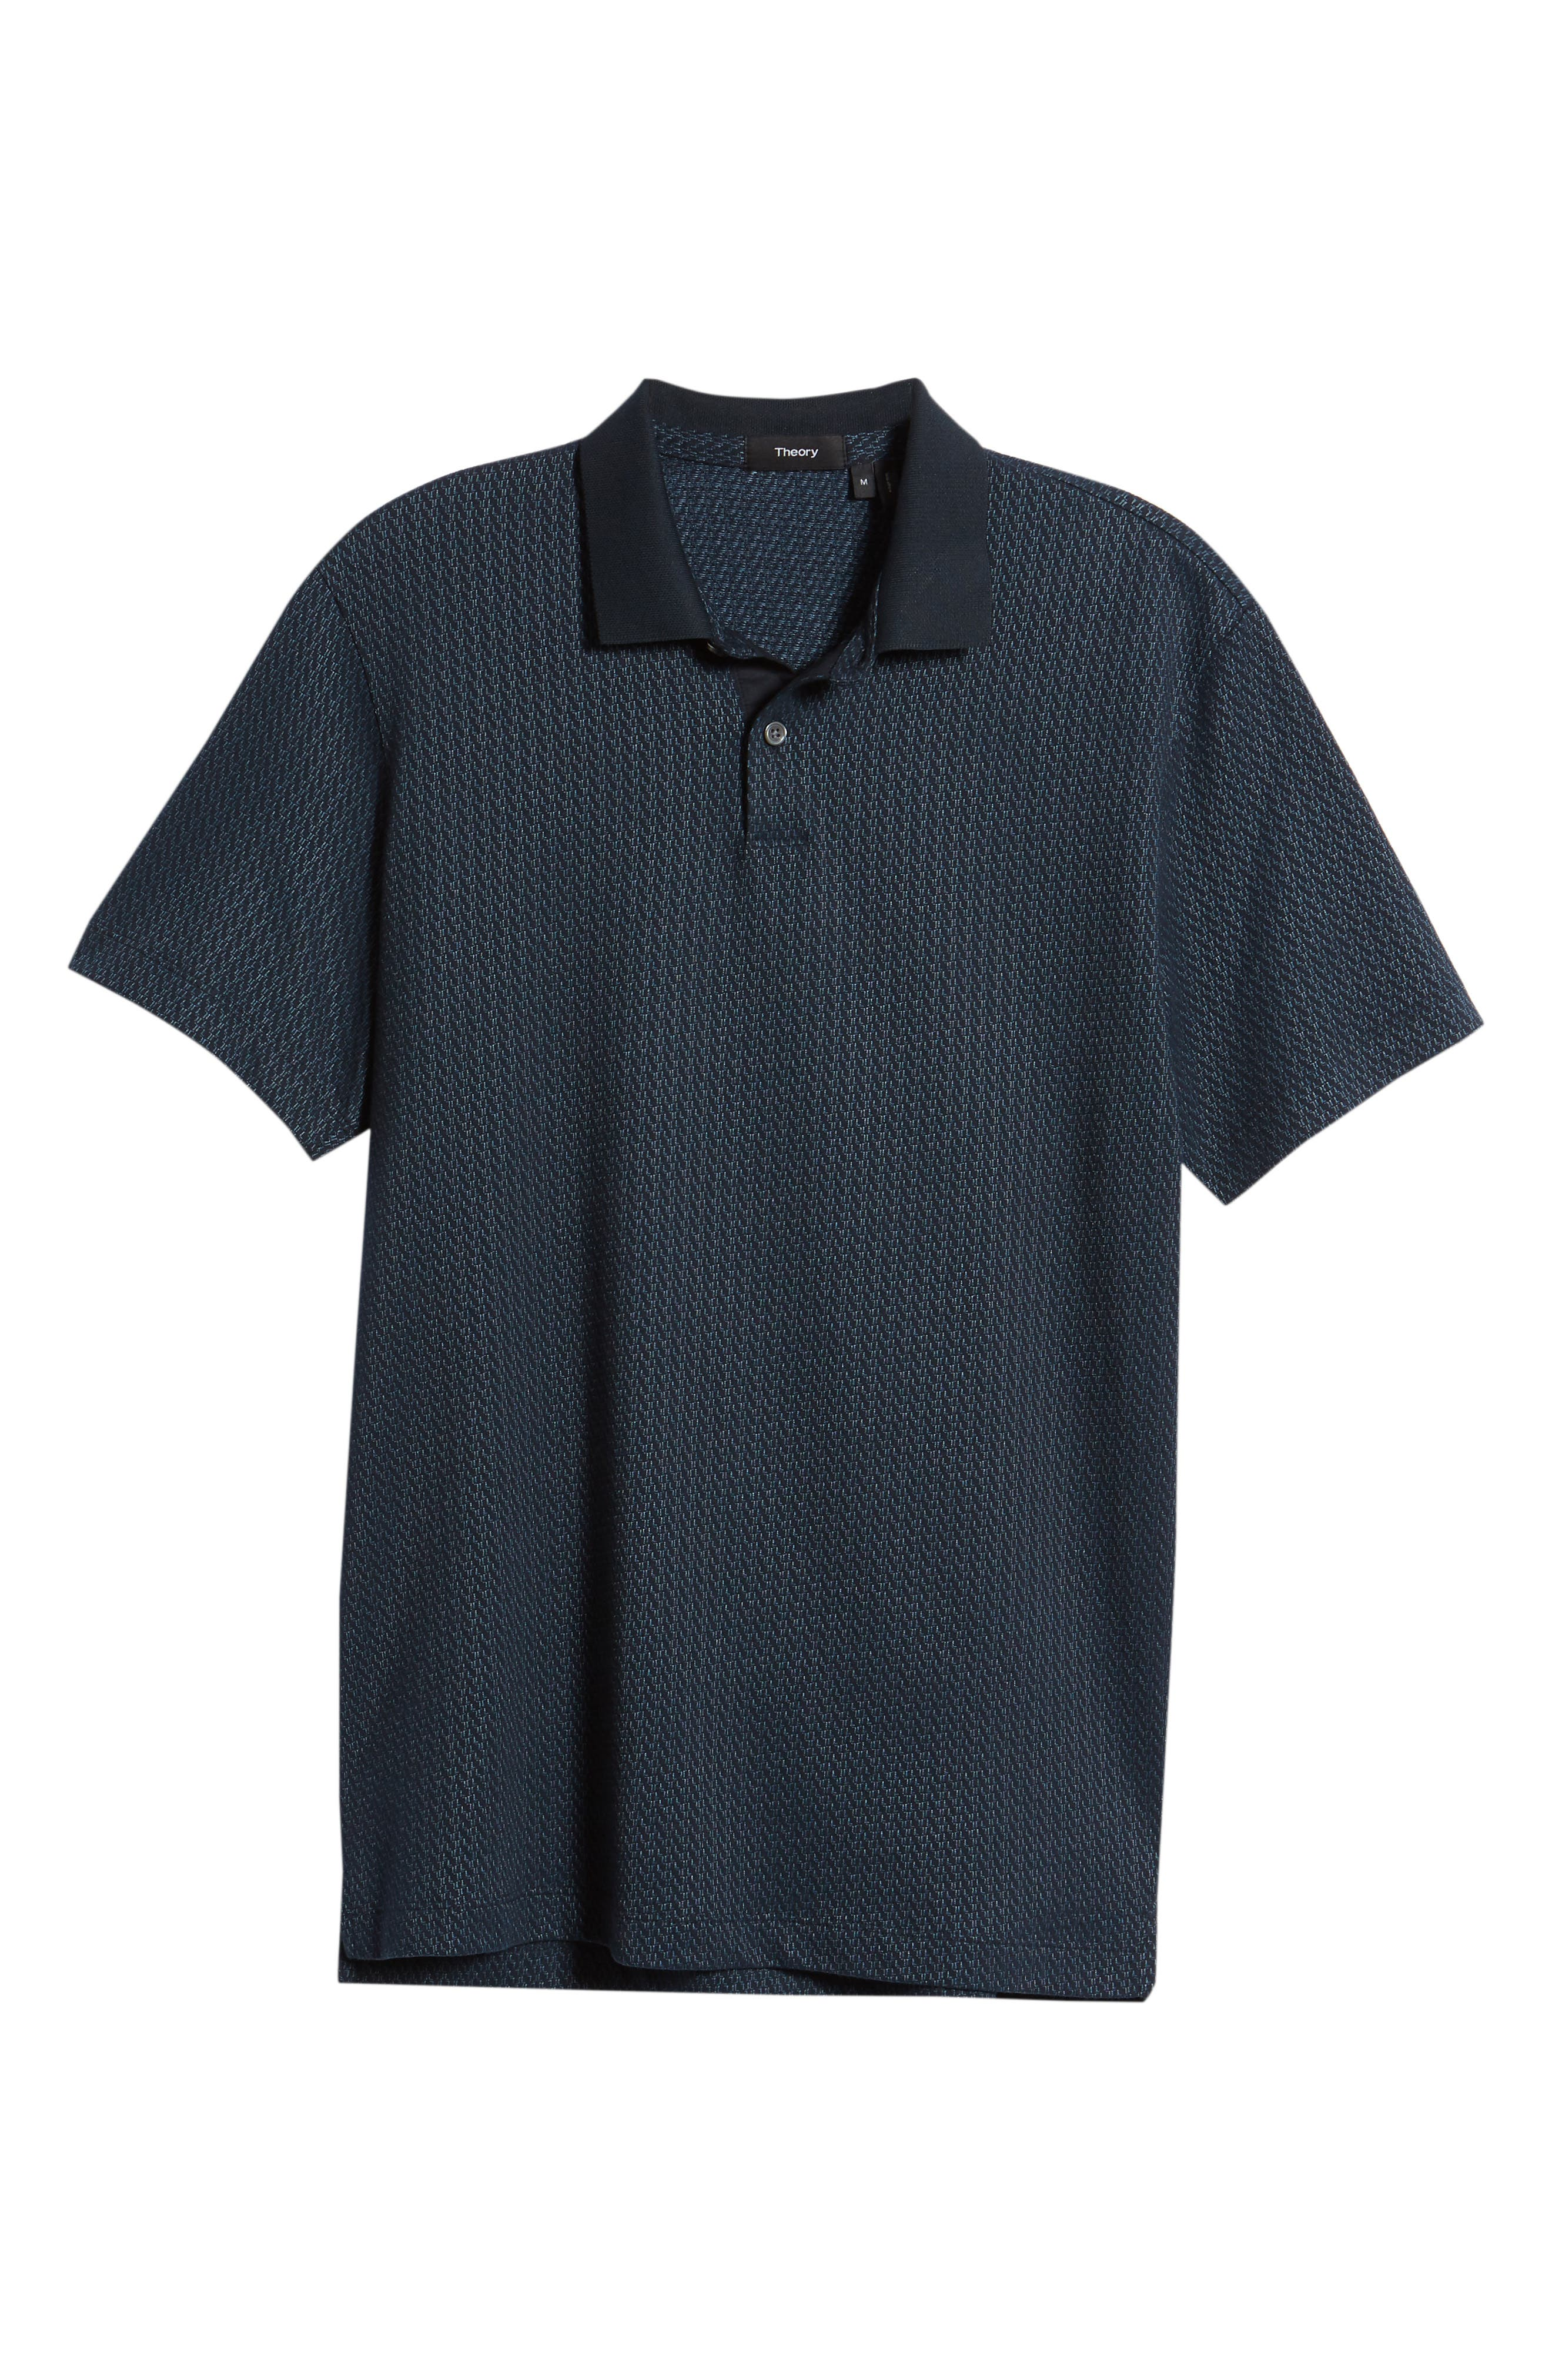 Bayliss Slim Fit Polo,                             Alternate thumbnail 6, color,                             Eclipse/ Hydro